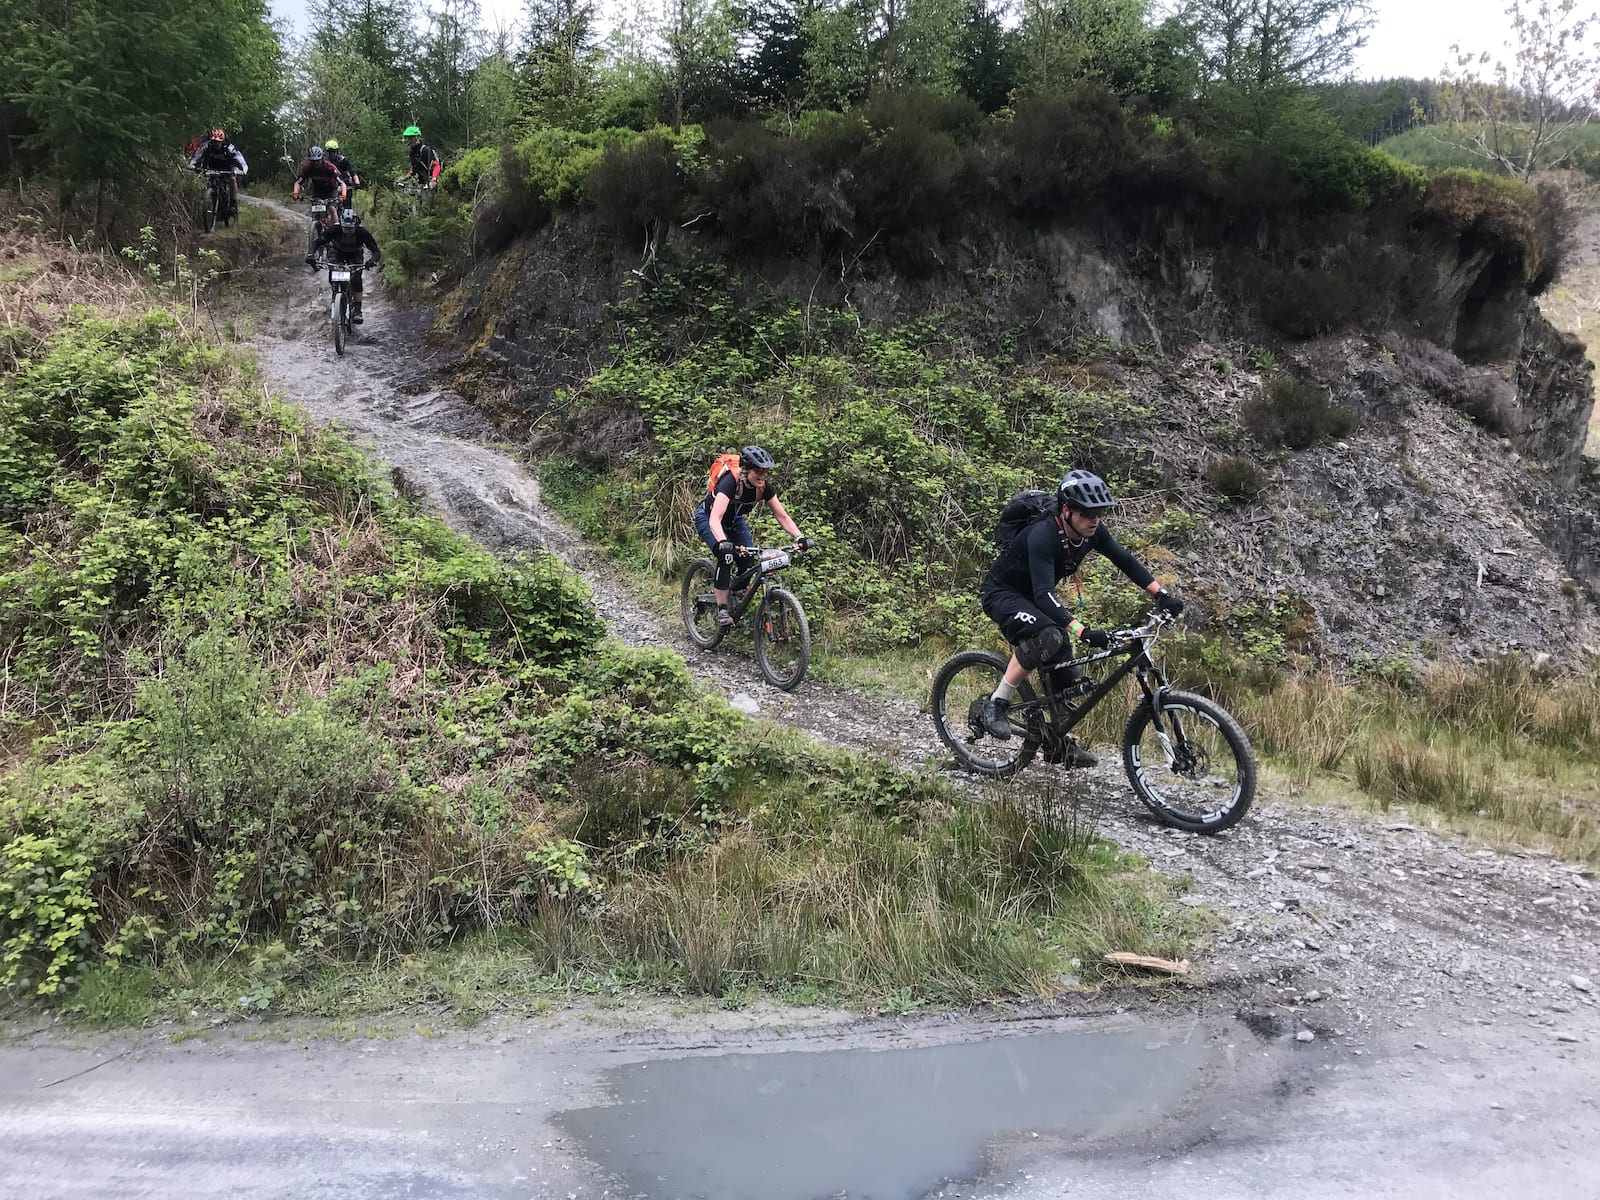 dyfi enduro 2019, world cup